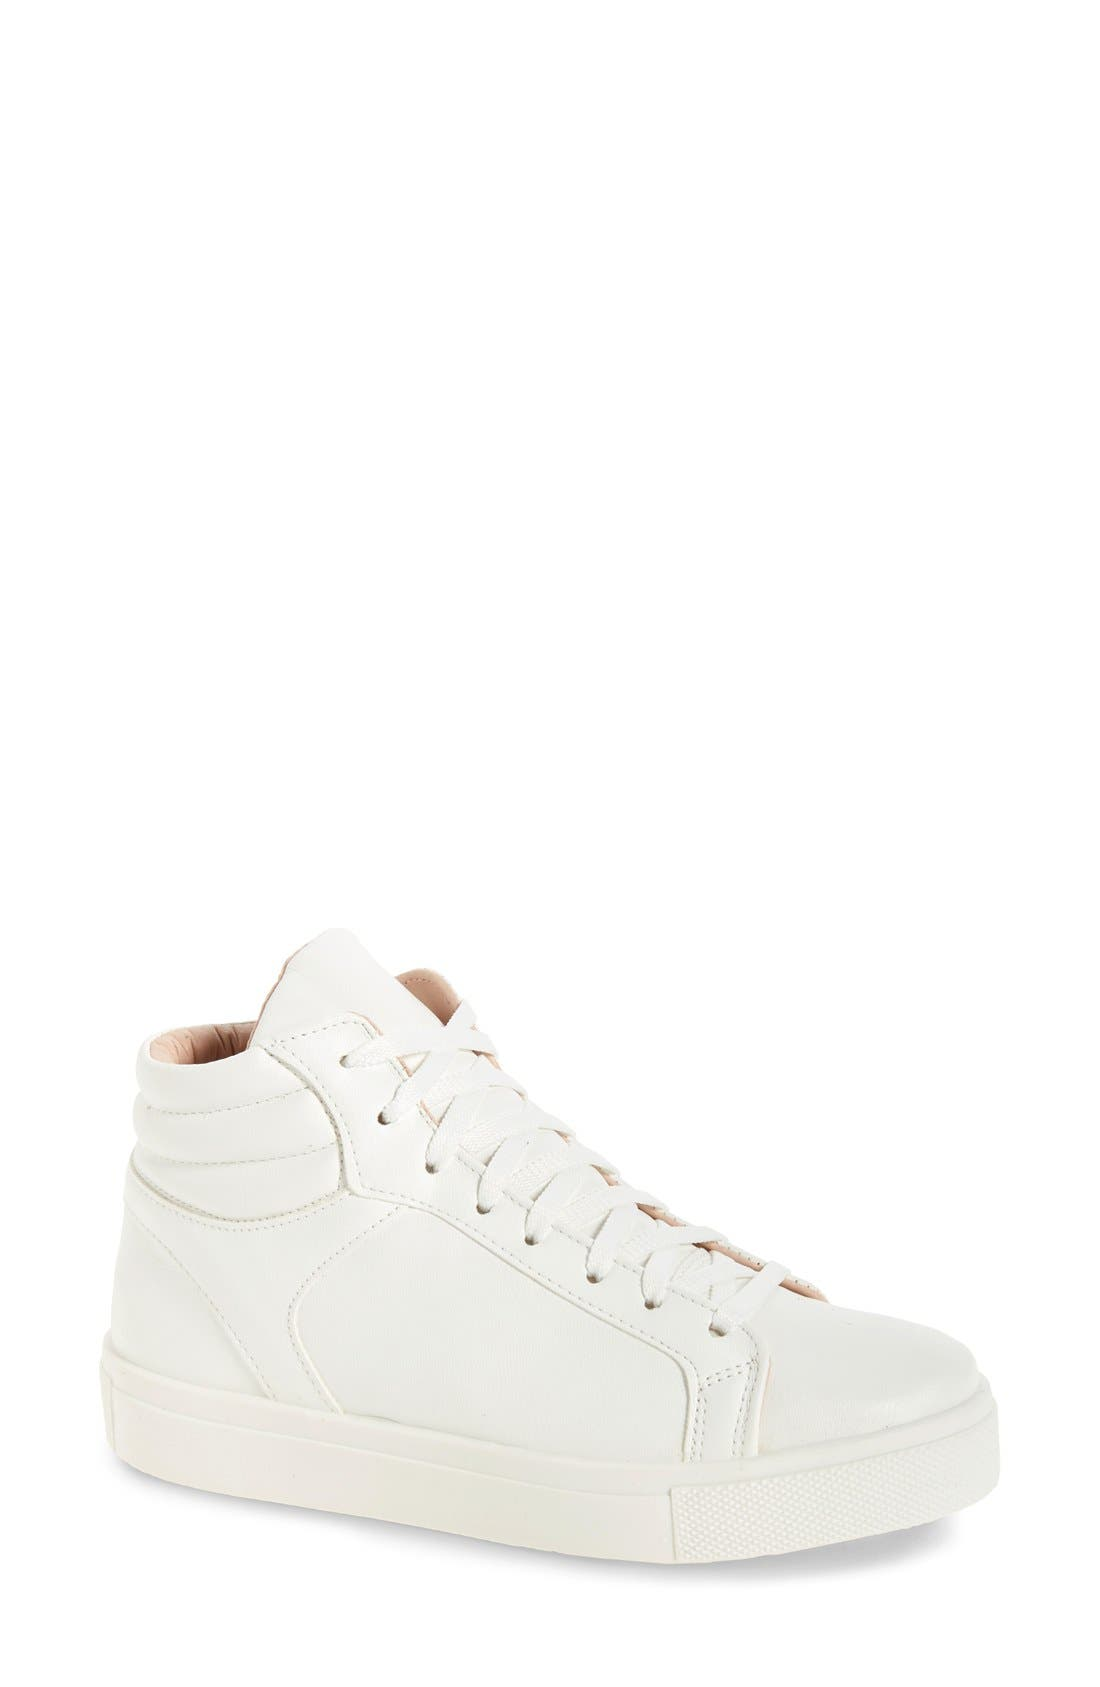 Topshop Cinger High Top Sneaker (Women)